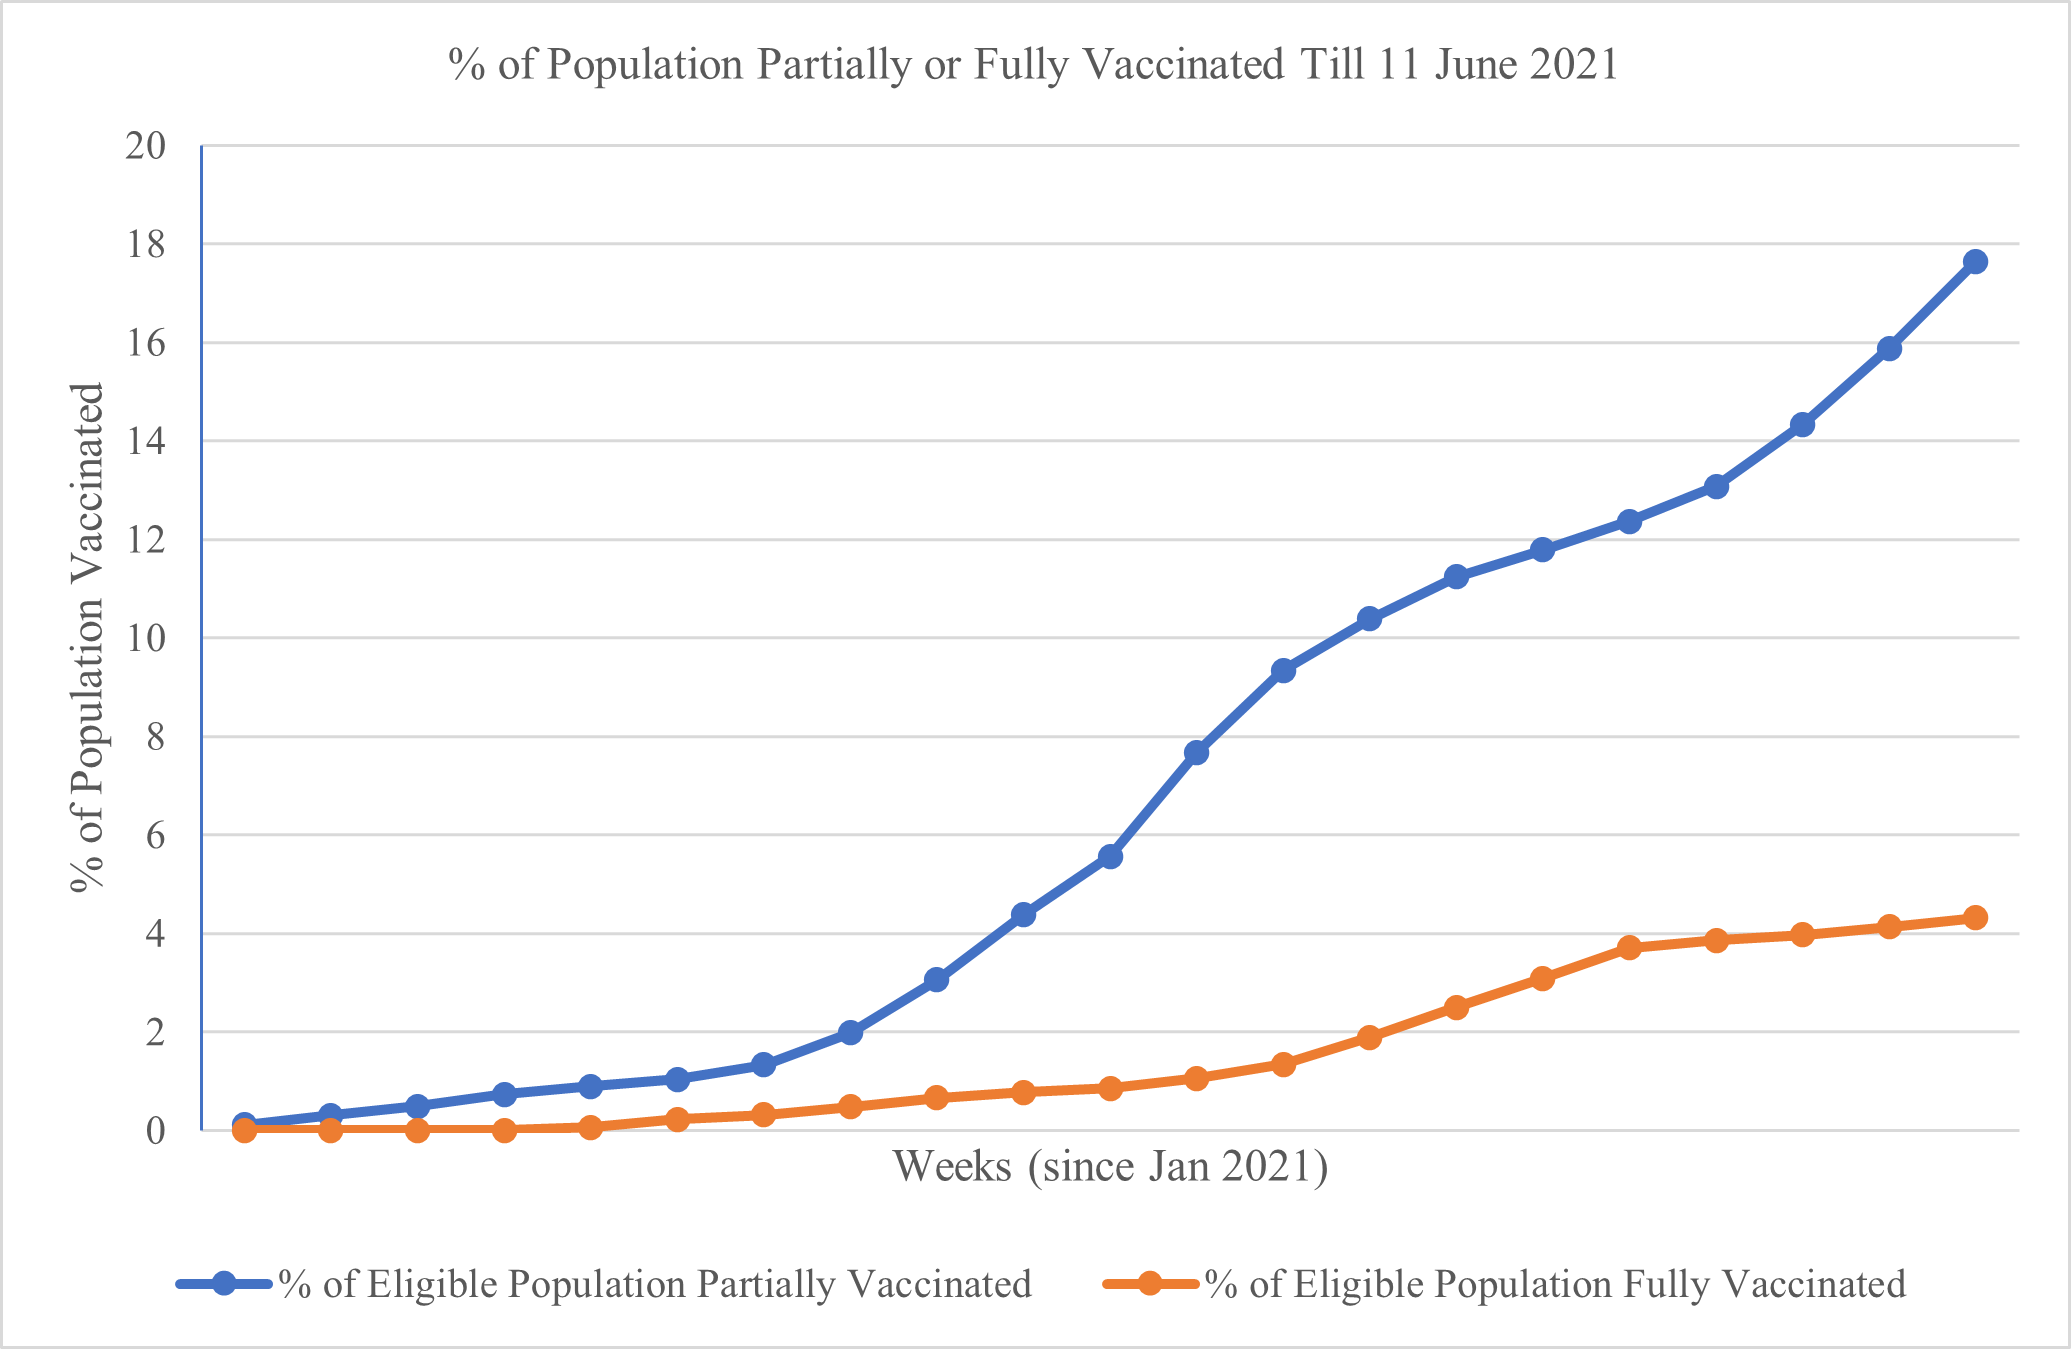 Percentage of India's population that has received first and second doses of a vaccine. Calculated based on an eligible population size of 1,068 million 18+ persons.